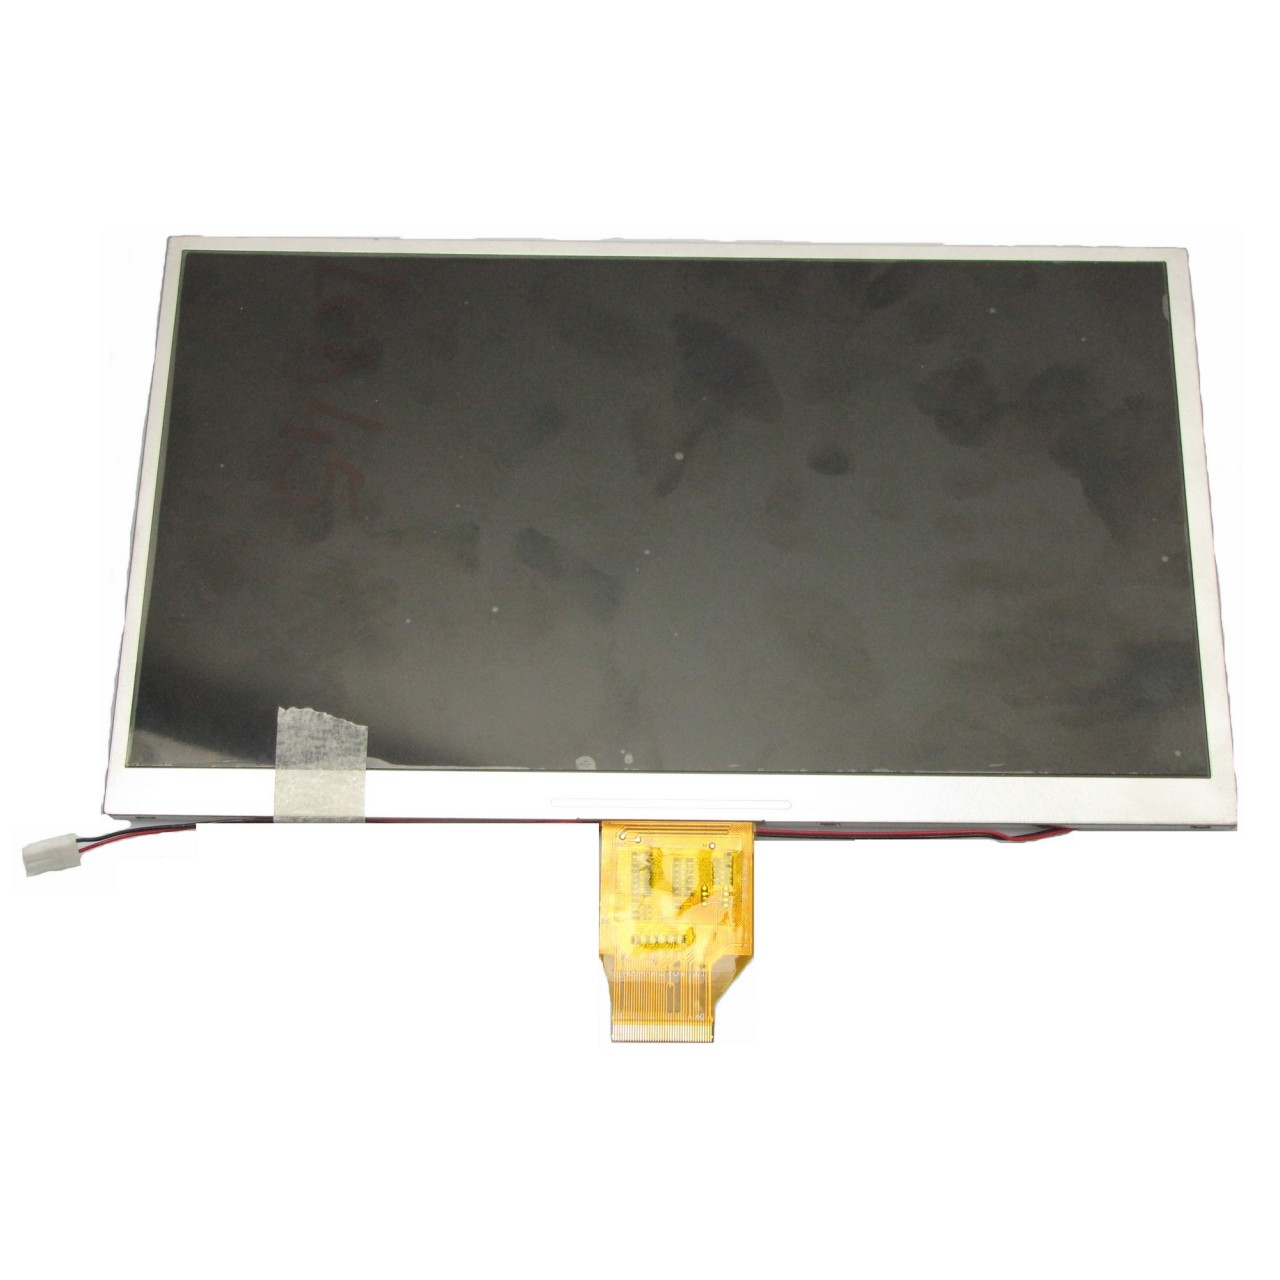 Display Serioux S102 S102Tab Ecran TN LCD Tableta ORIGINAL imagine powerlaptop.ro 2021